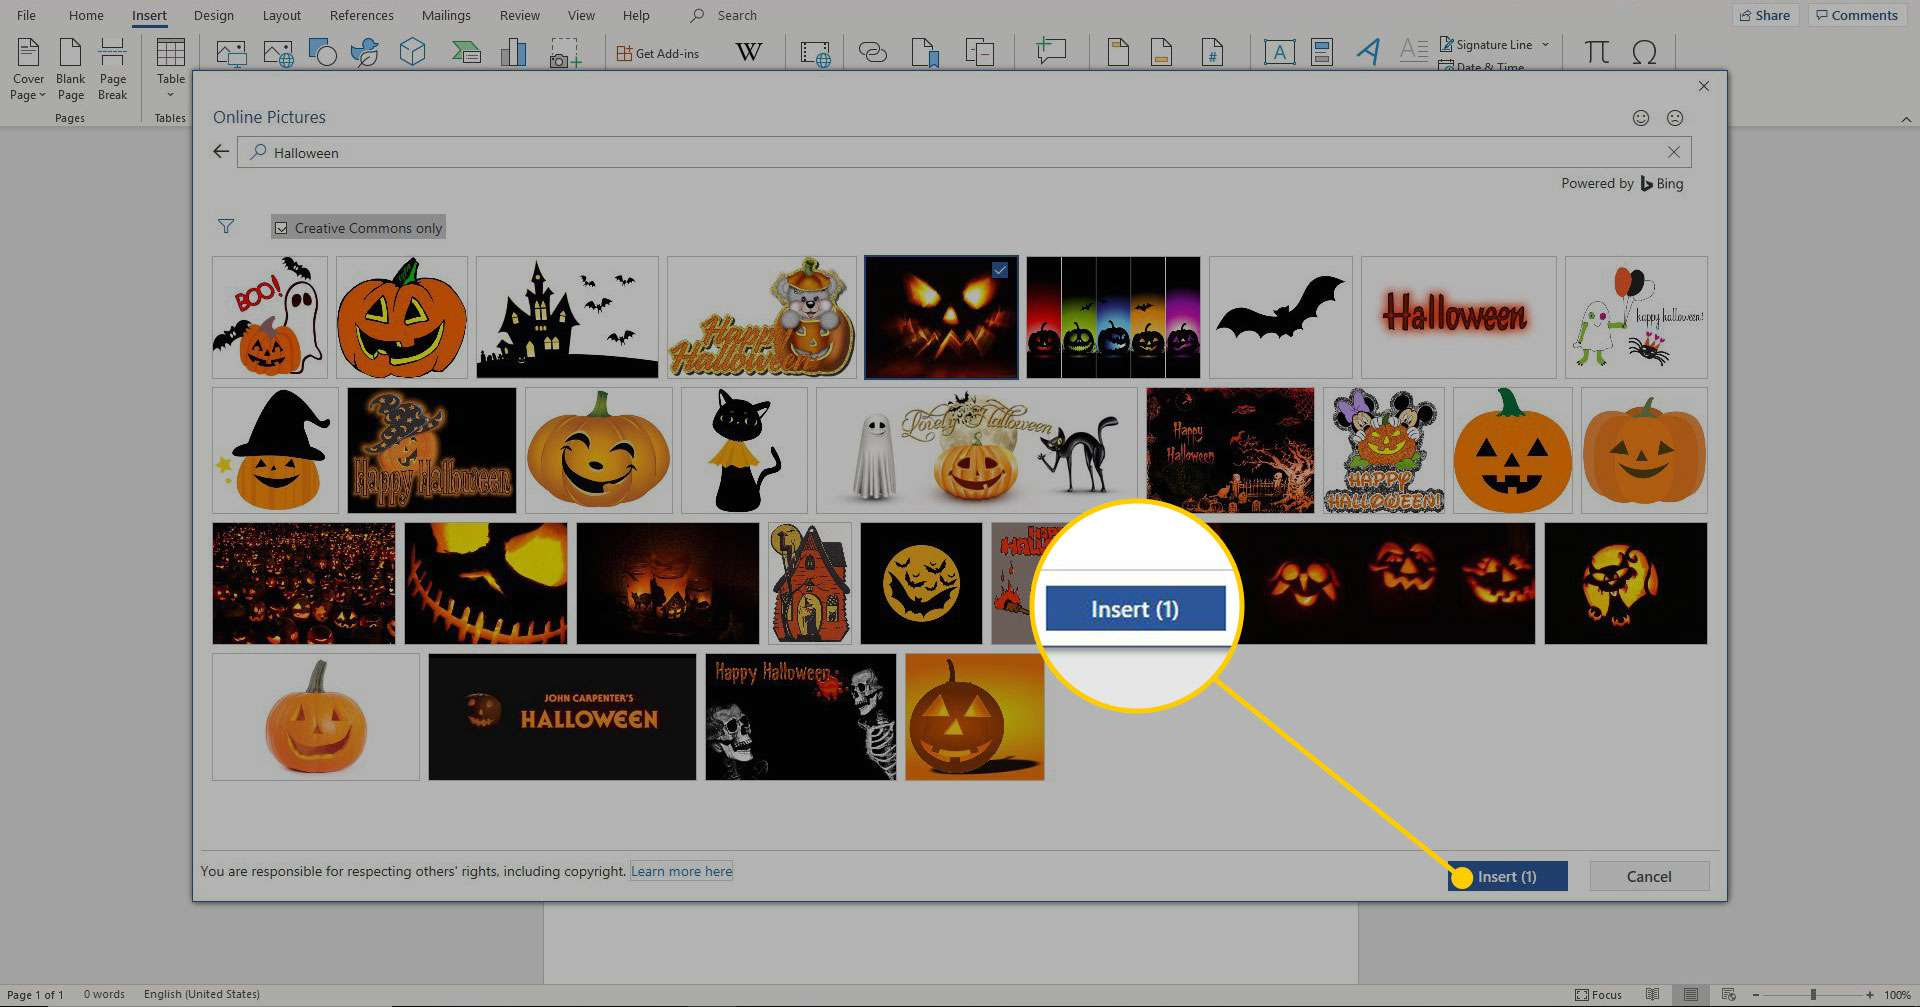 Online Pictures window in Word with the Insert button highlighted